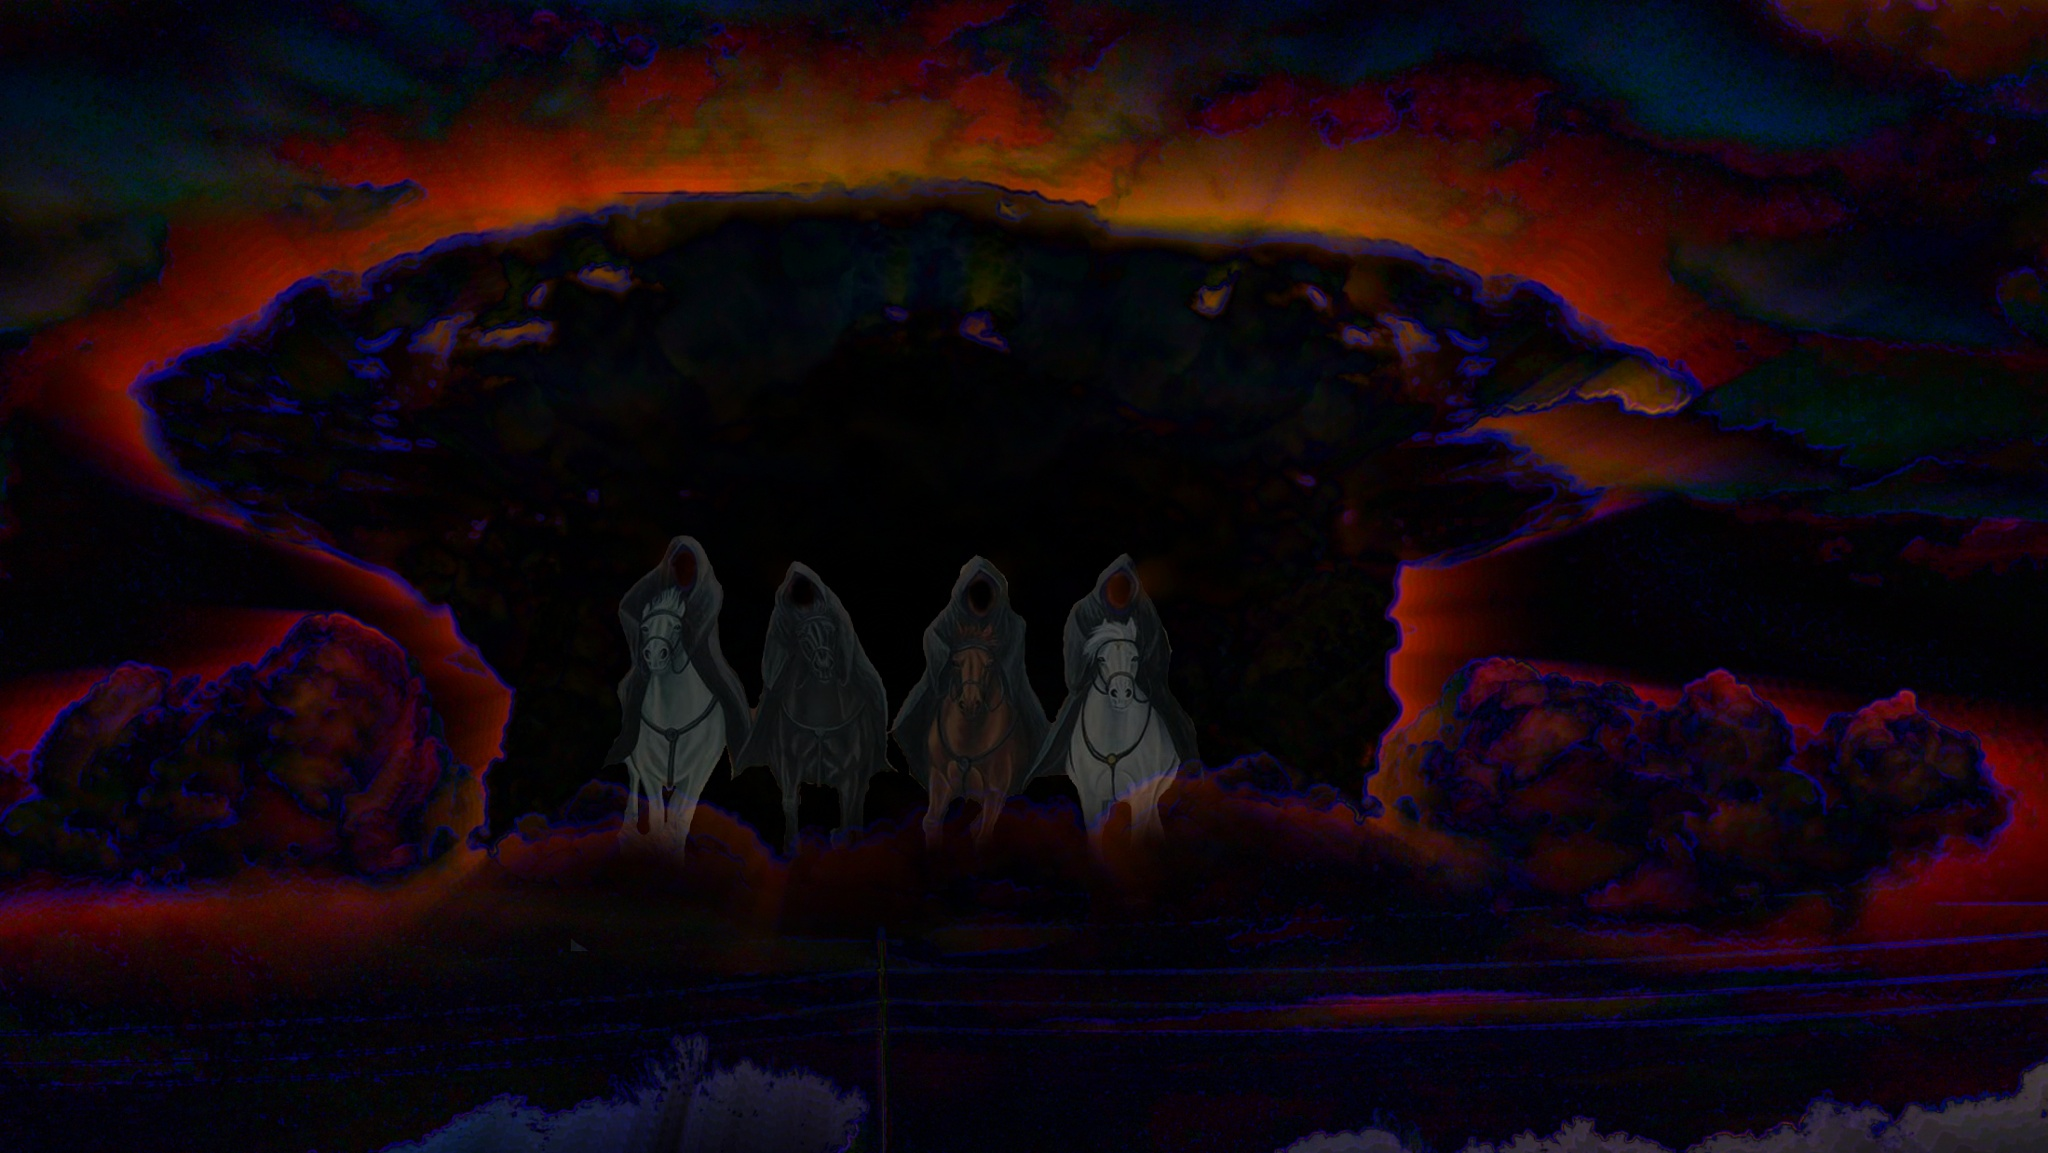 Breath Deep The Gathering Gloom . . . The Four Horsemen Of The Apocalypse by Lione'sLens